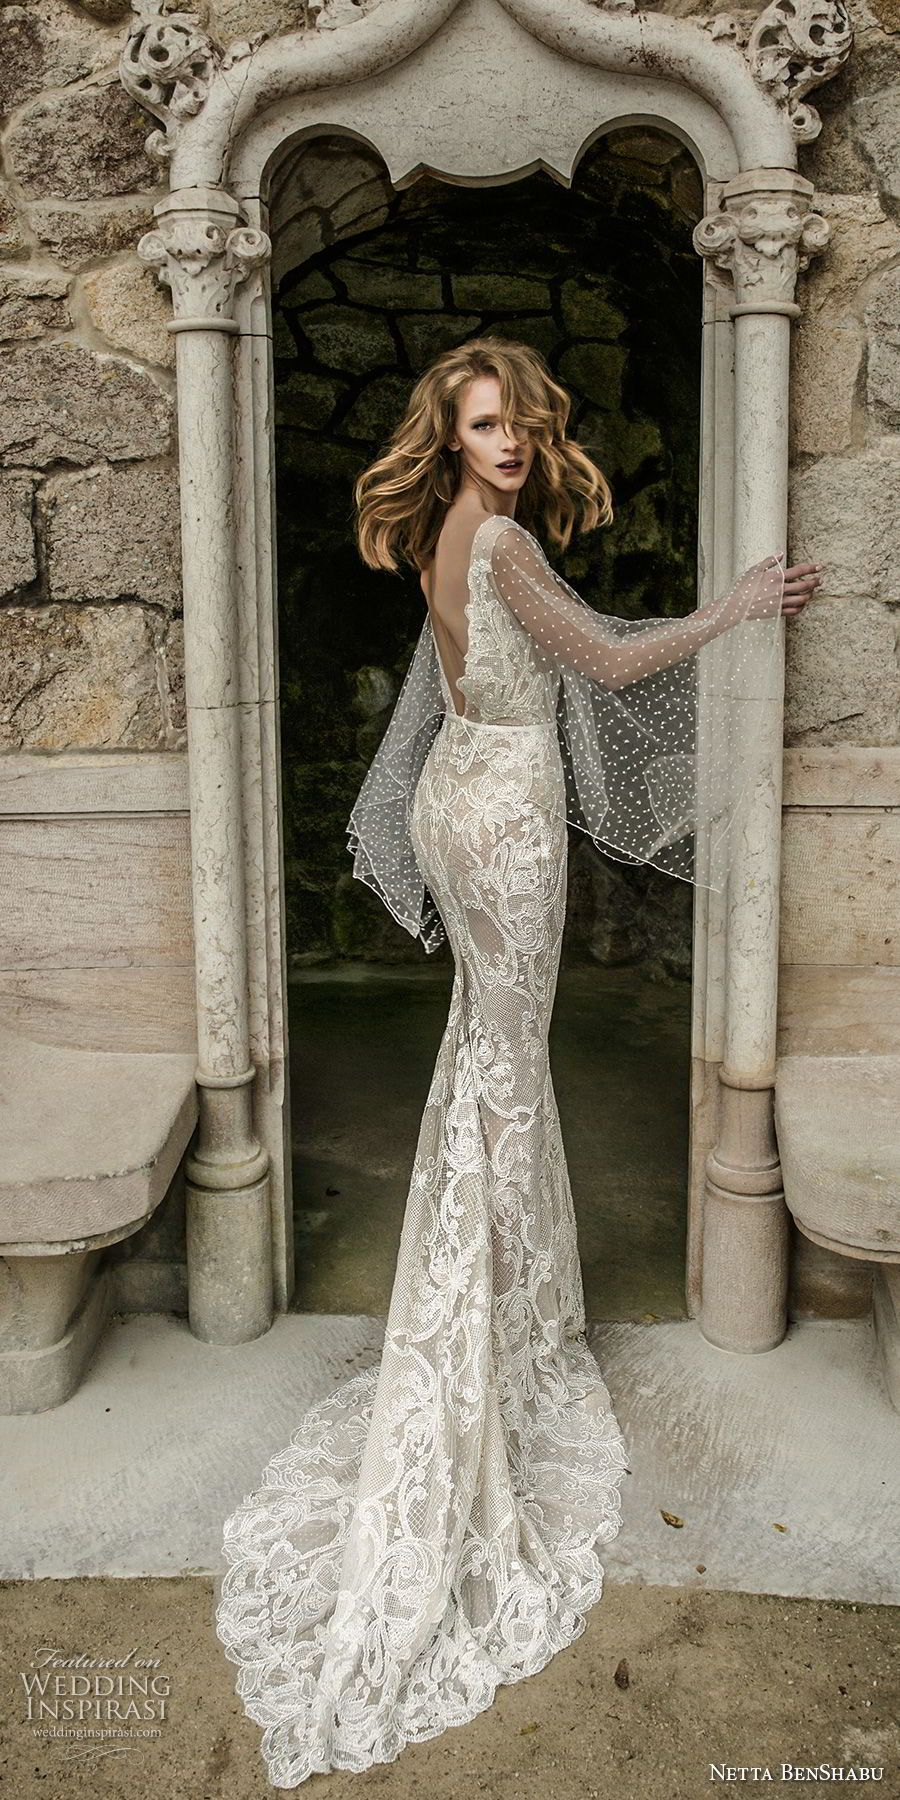 Netta benshabu wedding dresses u ucthe fairytale bride